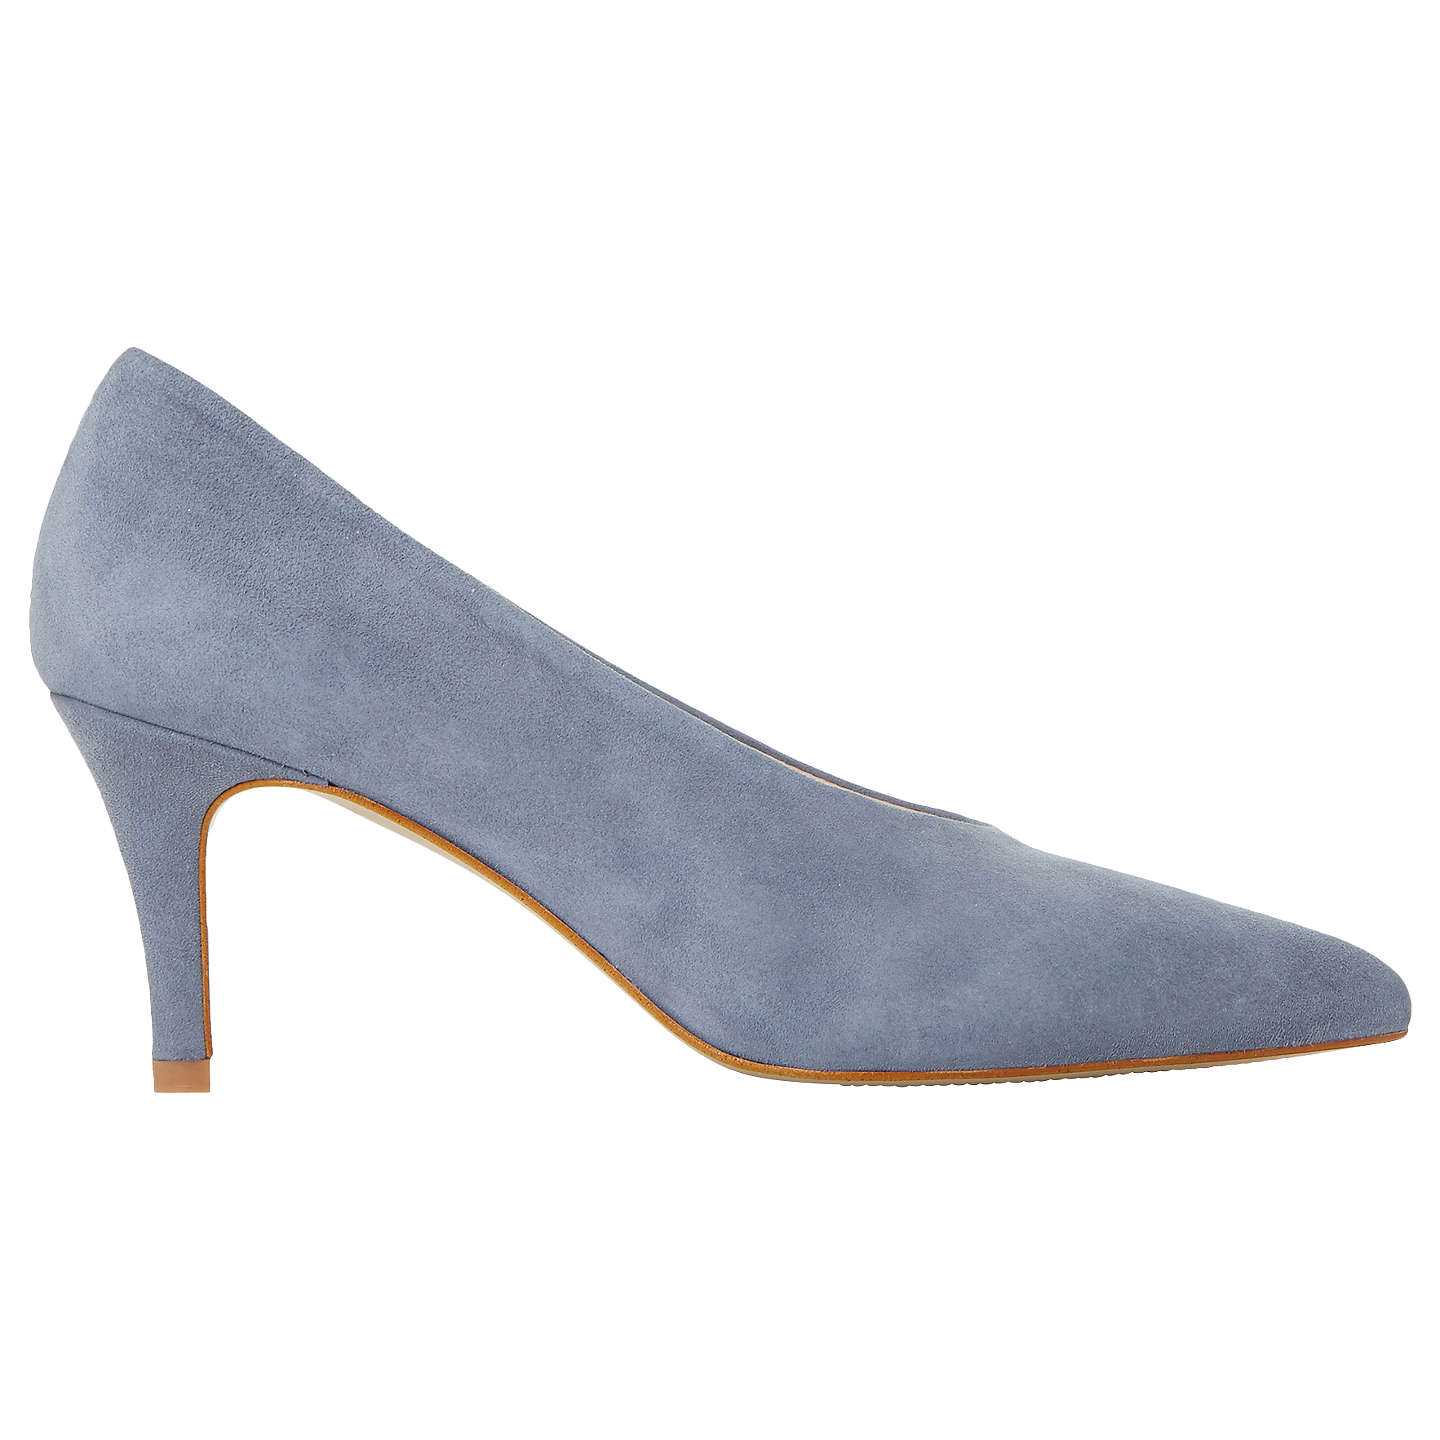 BuyDune Amorell Kitten Heeled Court Shoes, Grey Suede, 3 Online at johnlewis.com